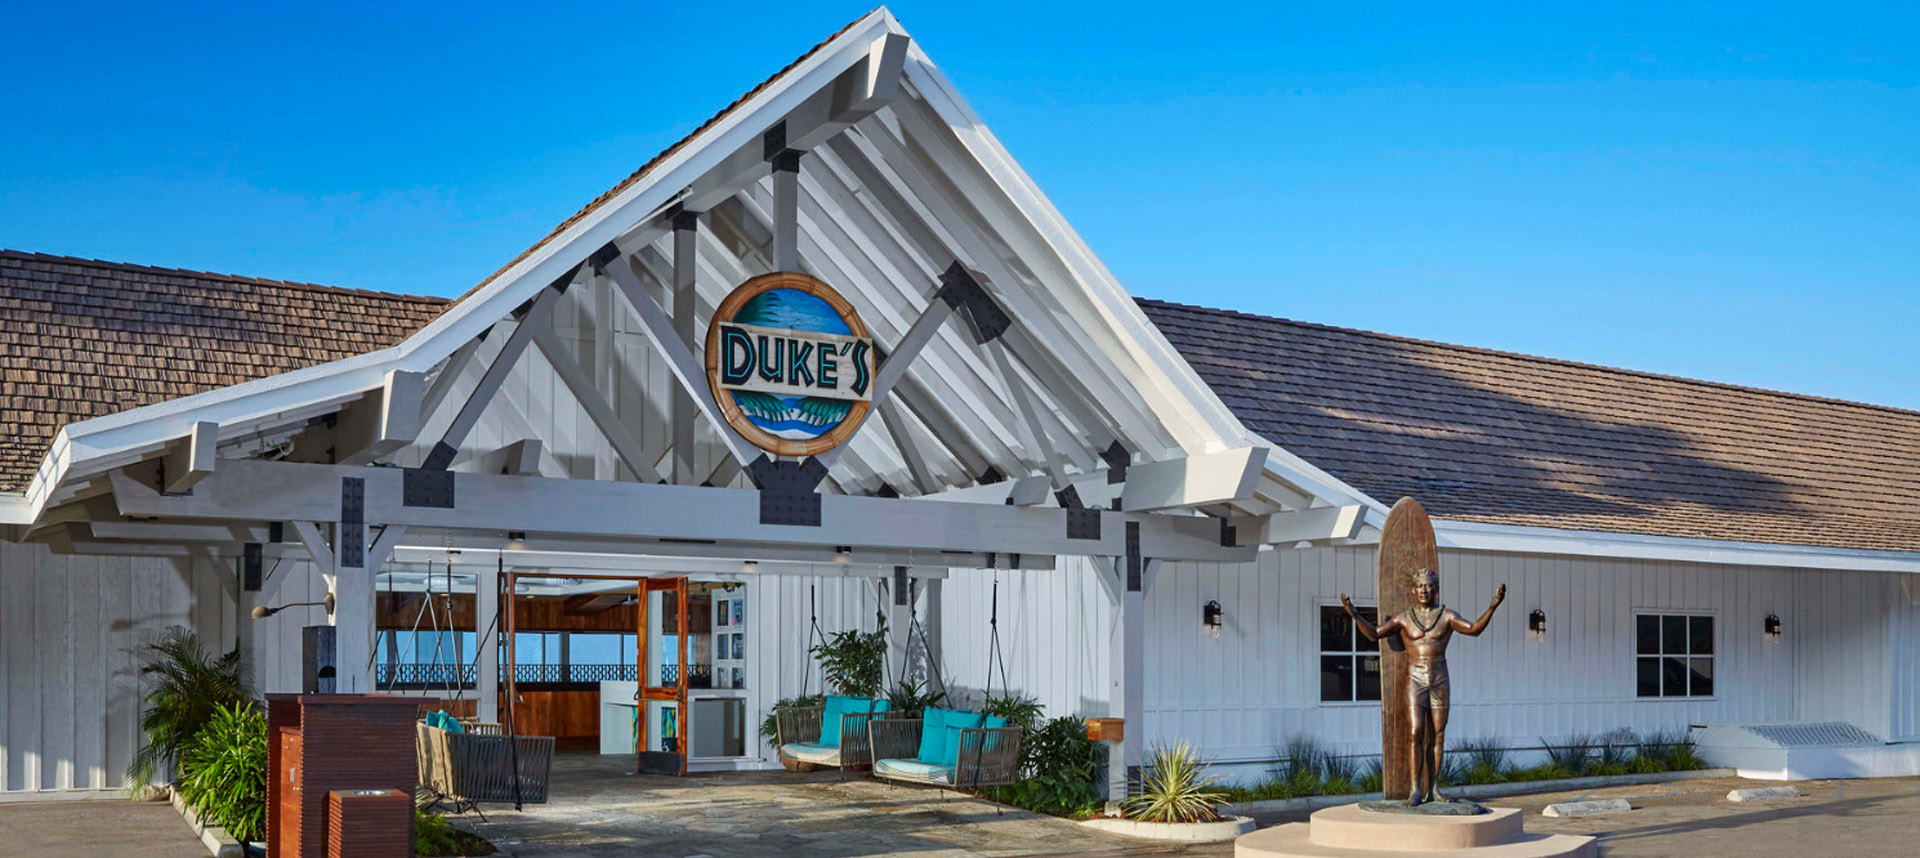 Entrance to Duke's